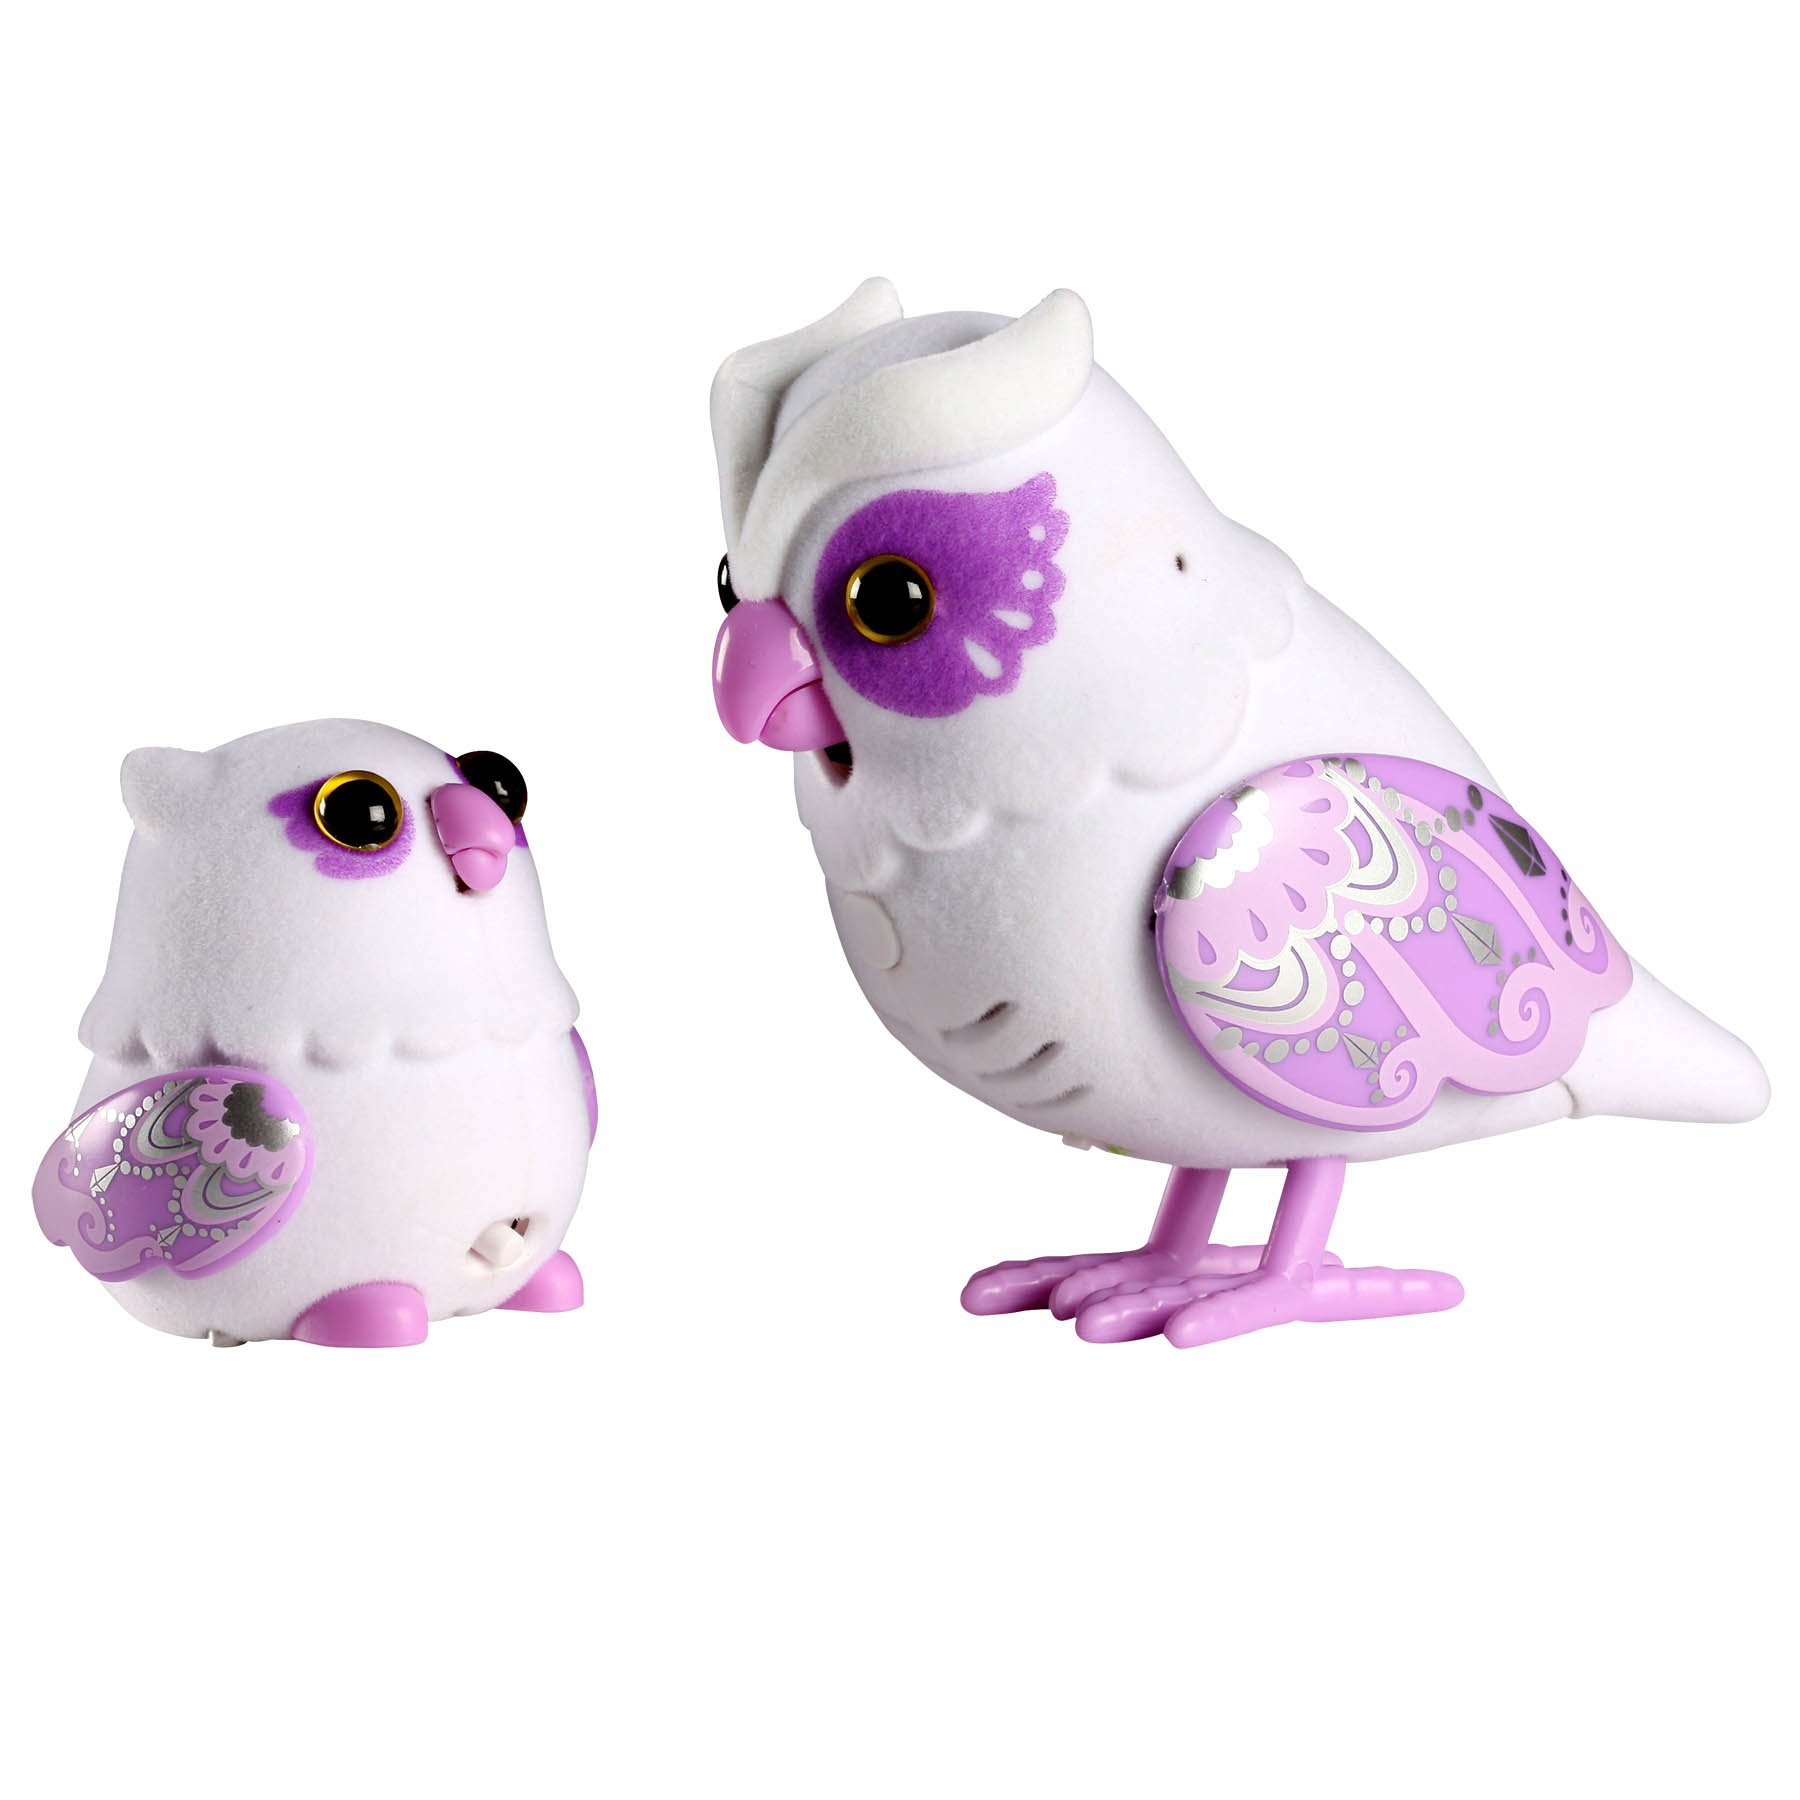 Little Live Pets S2 Tweet Talking Owl And Baby - Graceling Family by Little Live Pets (Image #1)